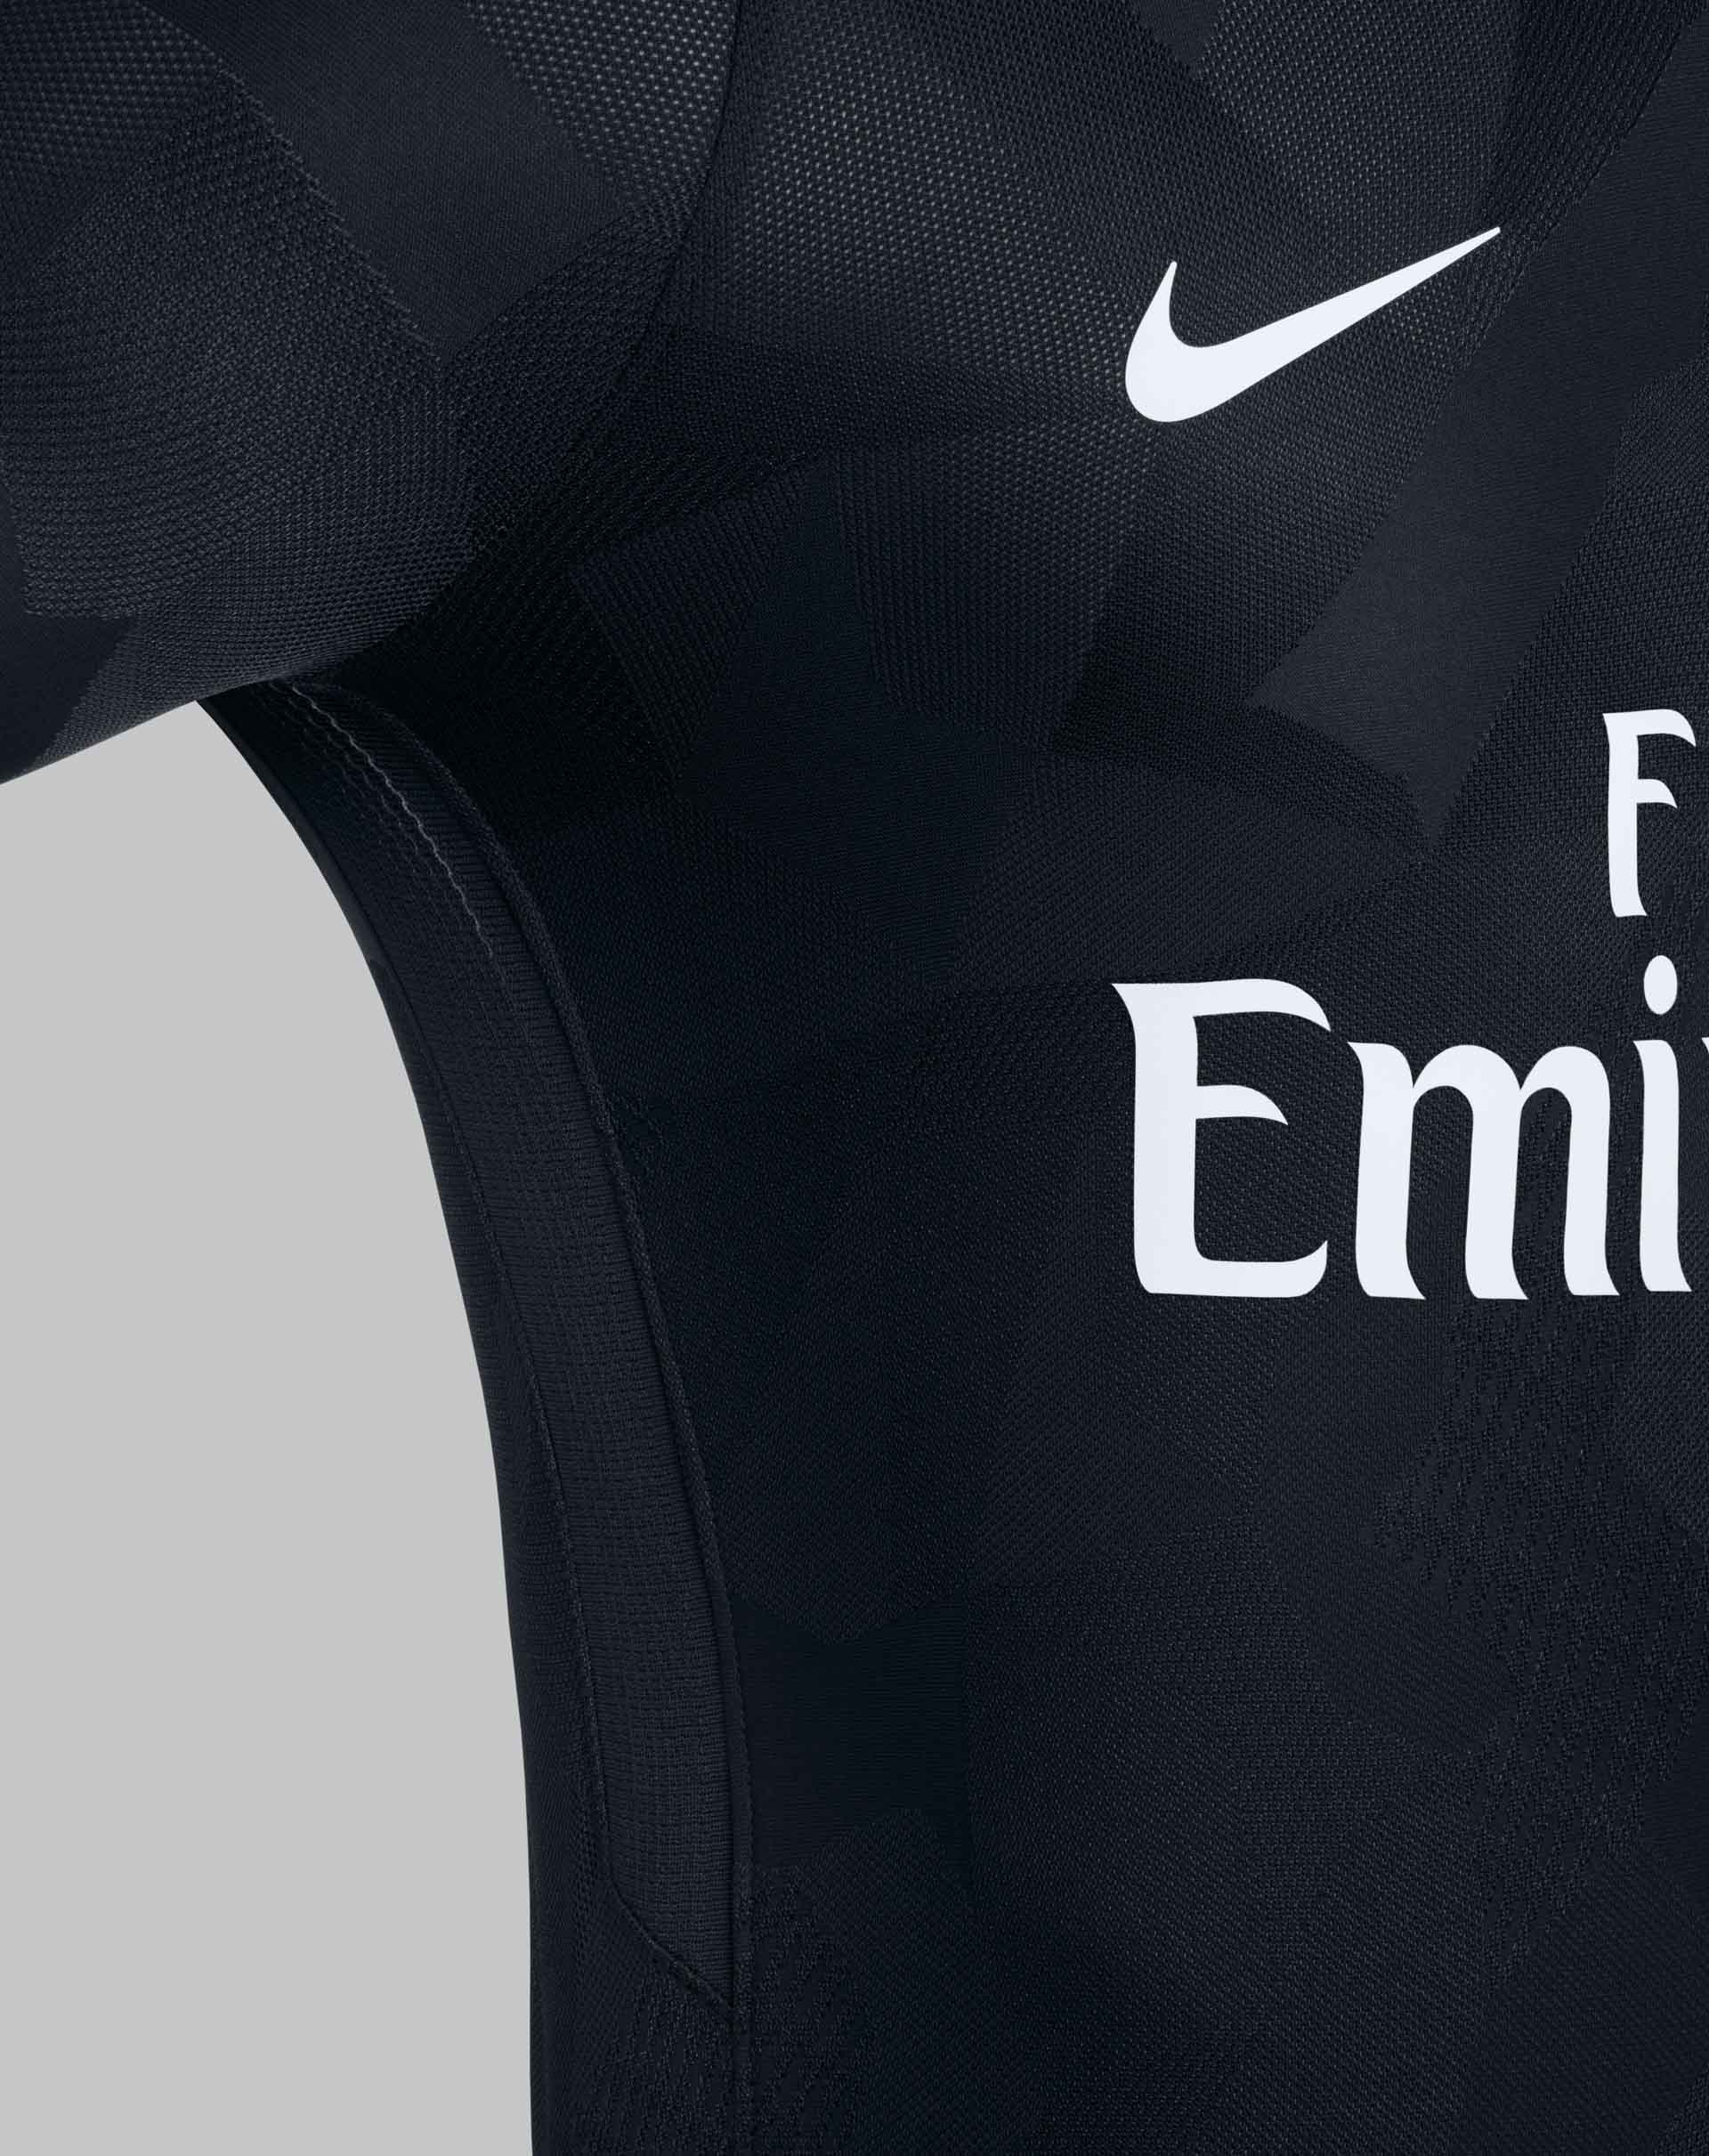 huge selection of a5021 c001f Neymar Reveals PSG 17/18 Nike Third Kit - SoccerBible